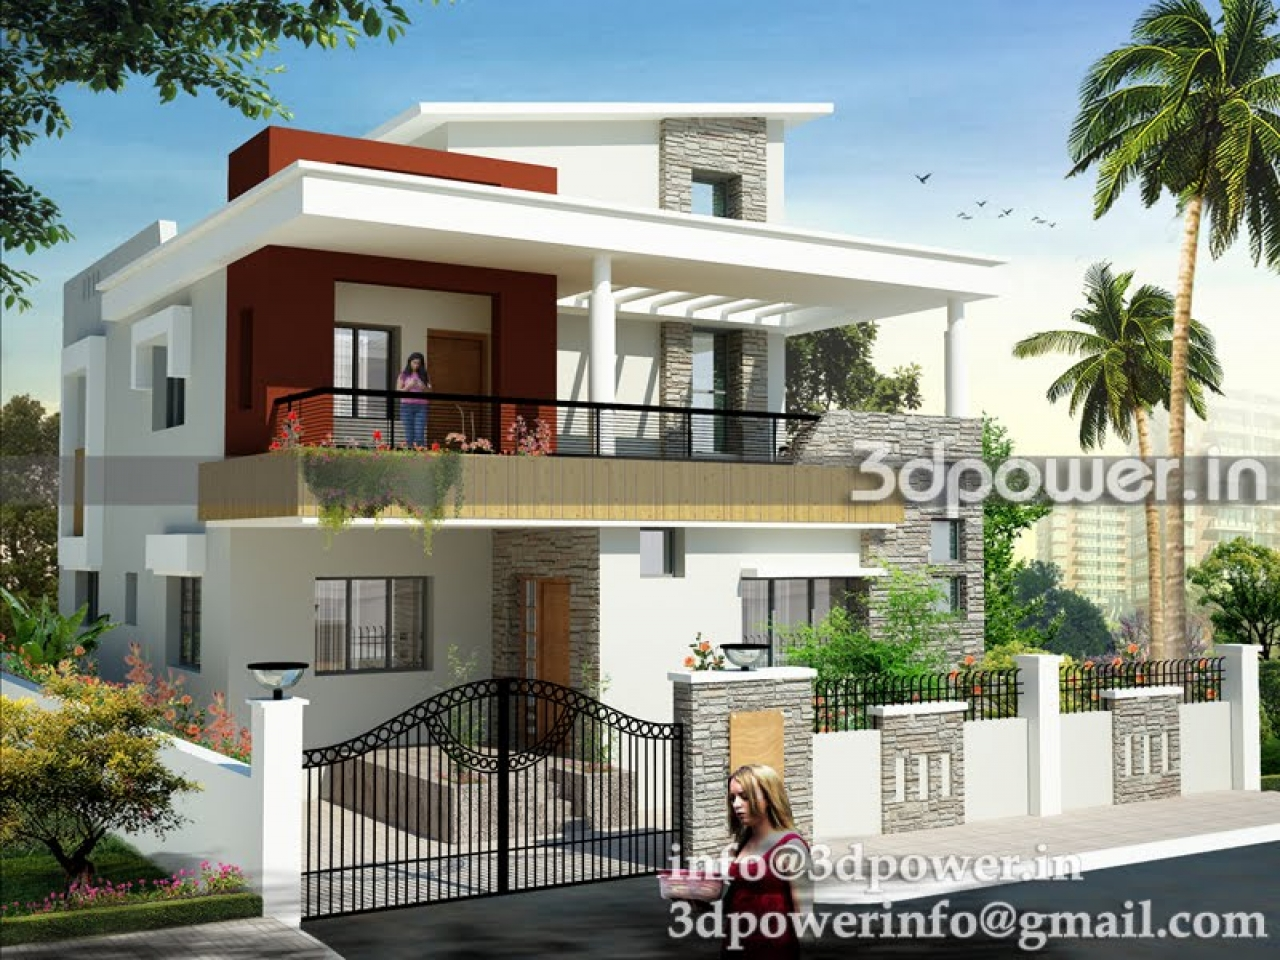 Small Cottage Plans With Porches Small Bungalow Designs In